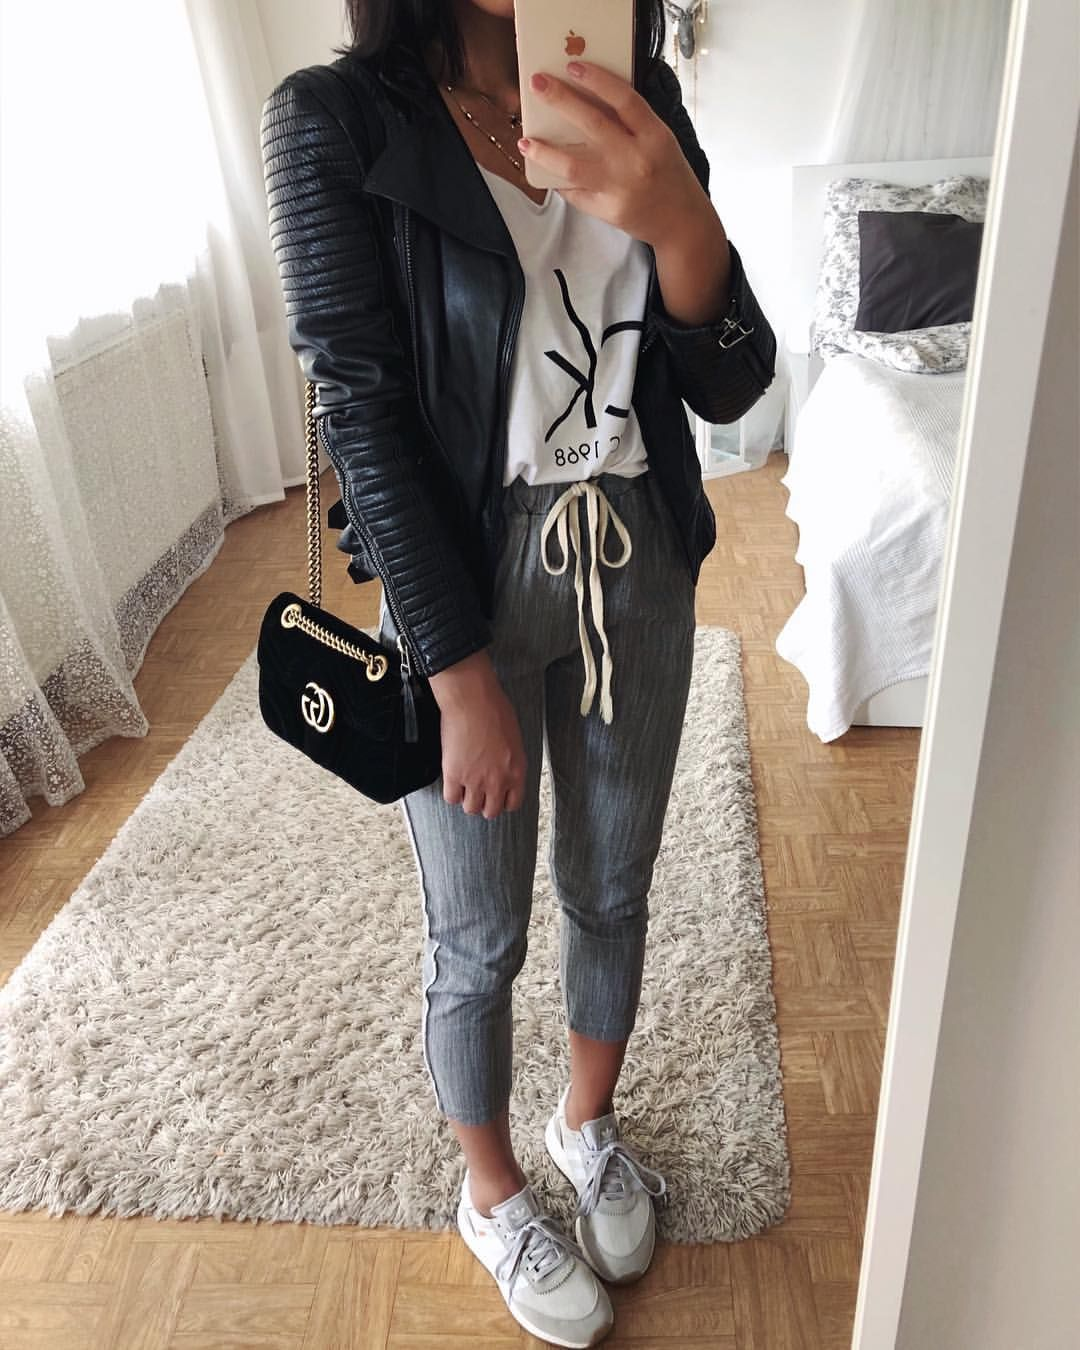 Stylelooks Campus on campus genesis american university recommend dress in autumn in 2019